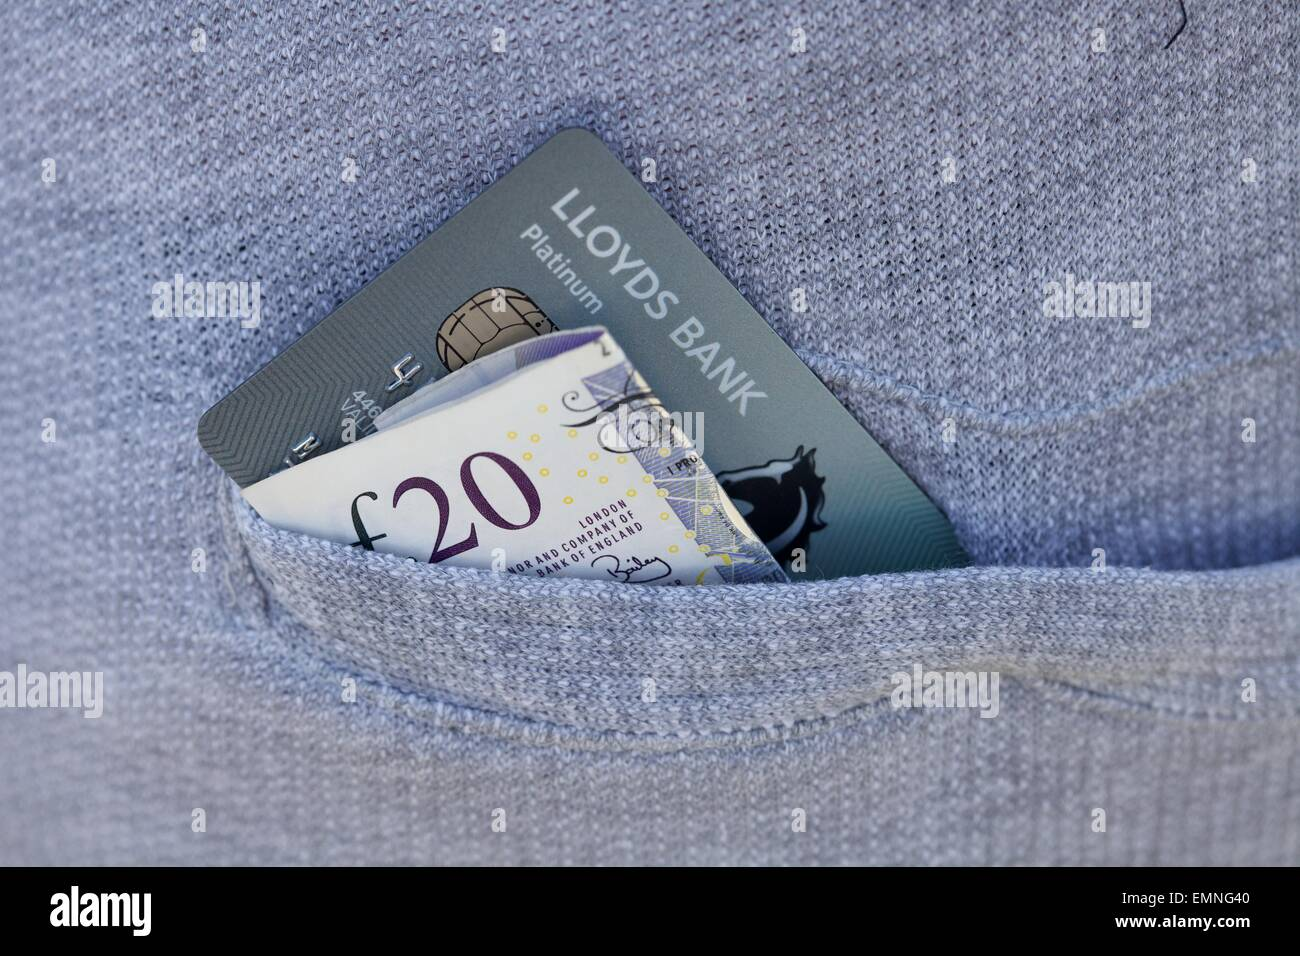 Close Up Shot Of Back Pocket Of Trousers With Lloyds Bank Debit Card And  Money